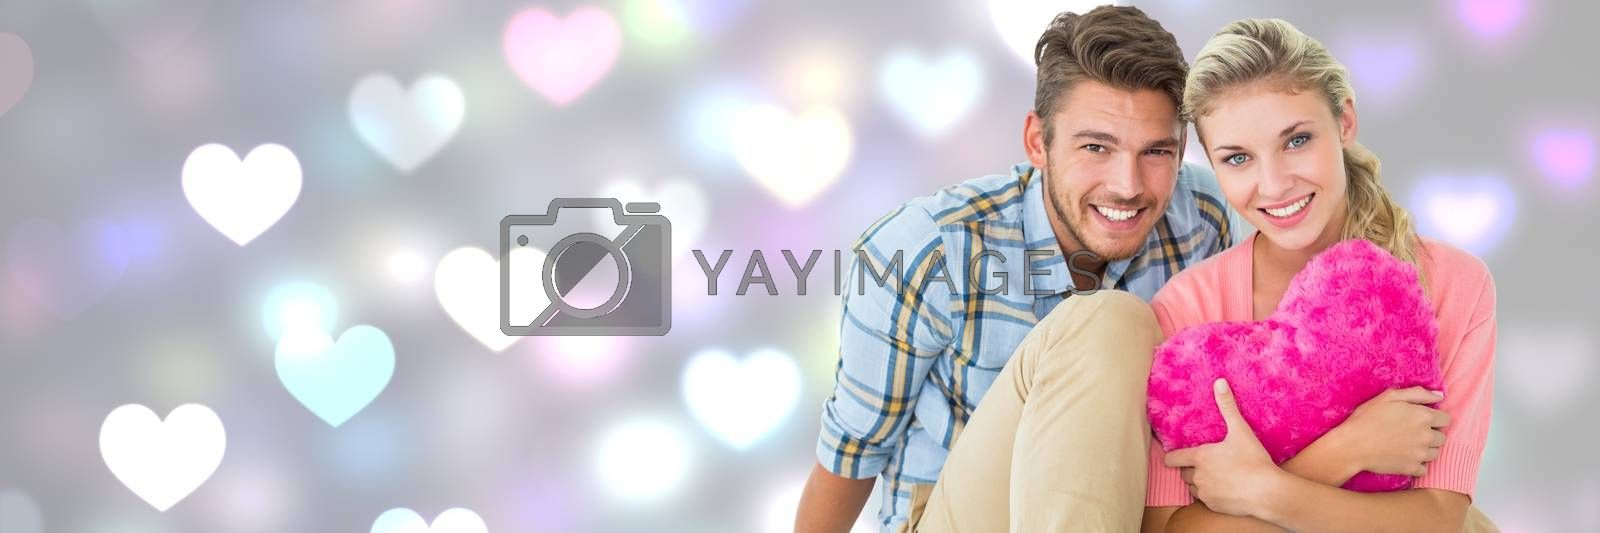 Digital composite of Valentines couple with love hearts background